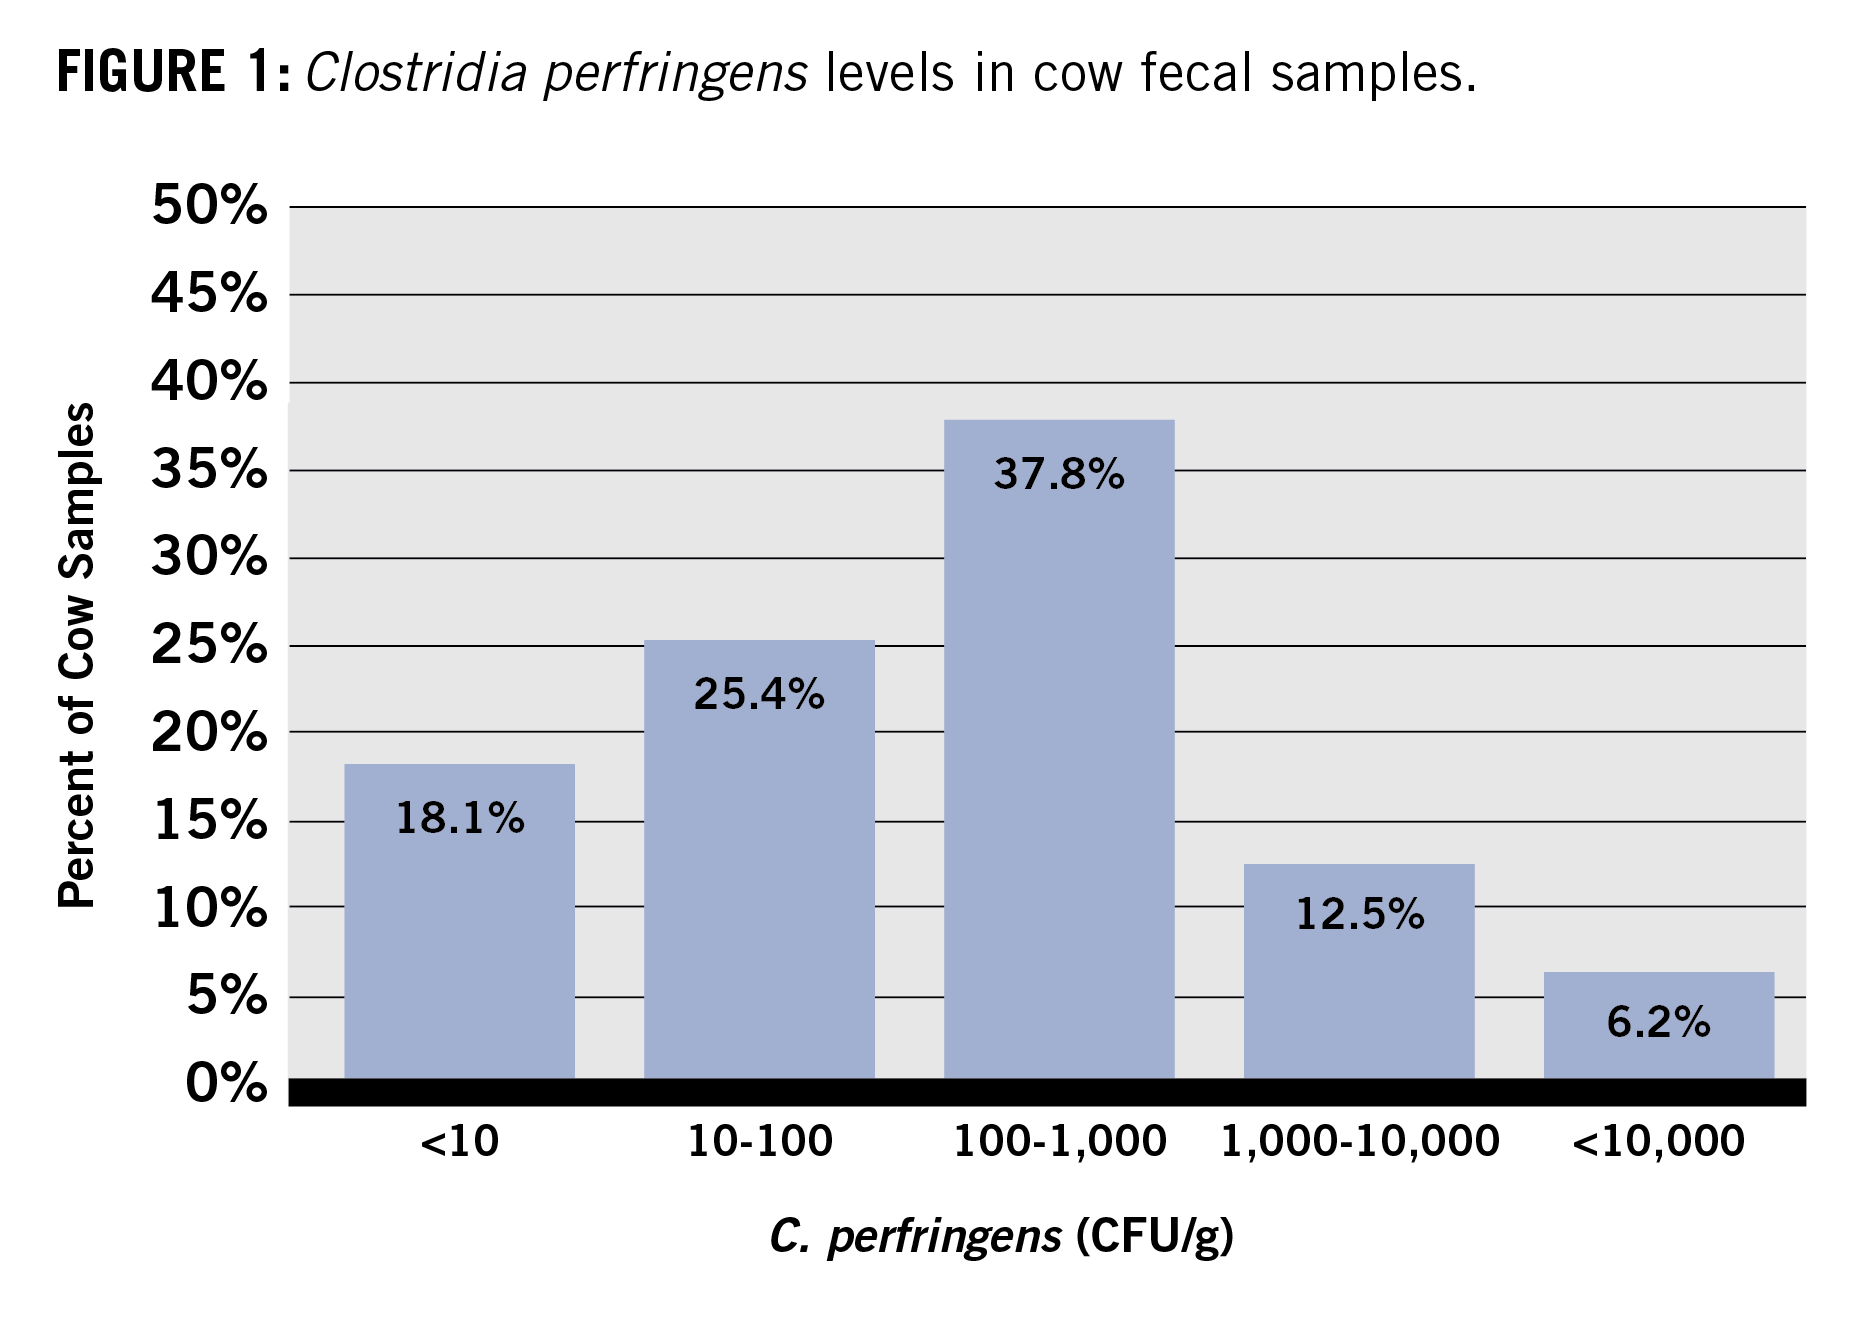 clostridia perfringens levels in cow fecal samples chart